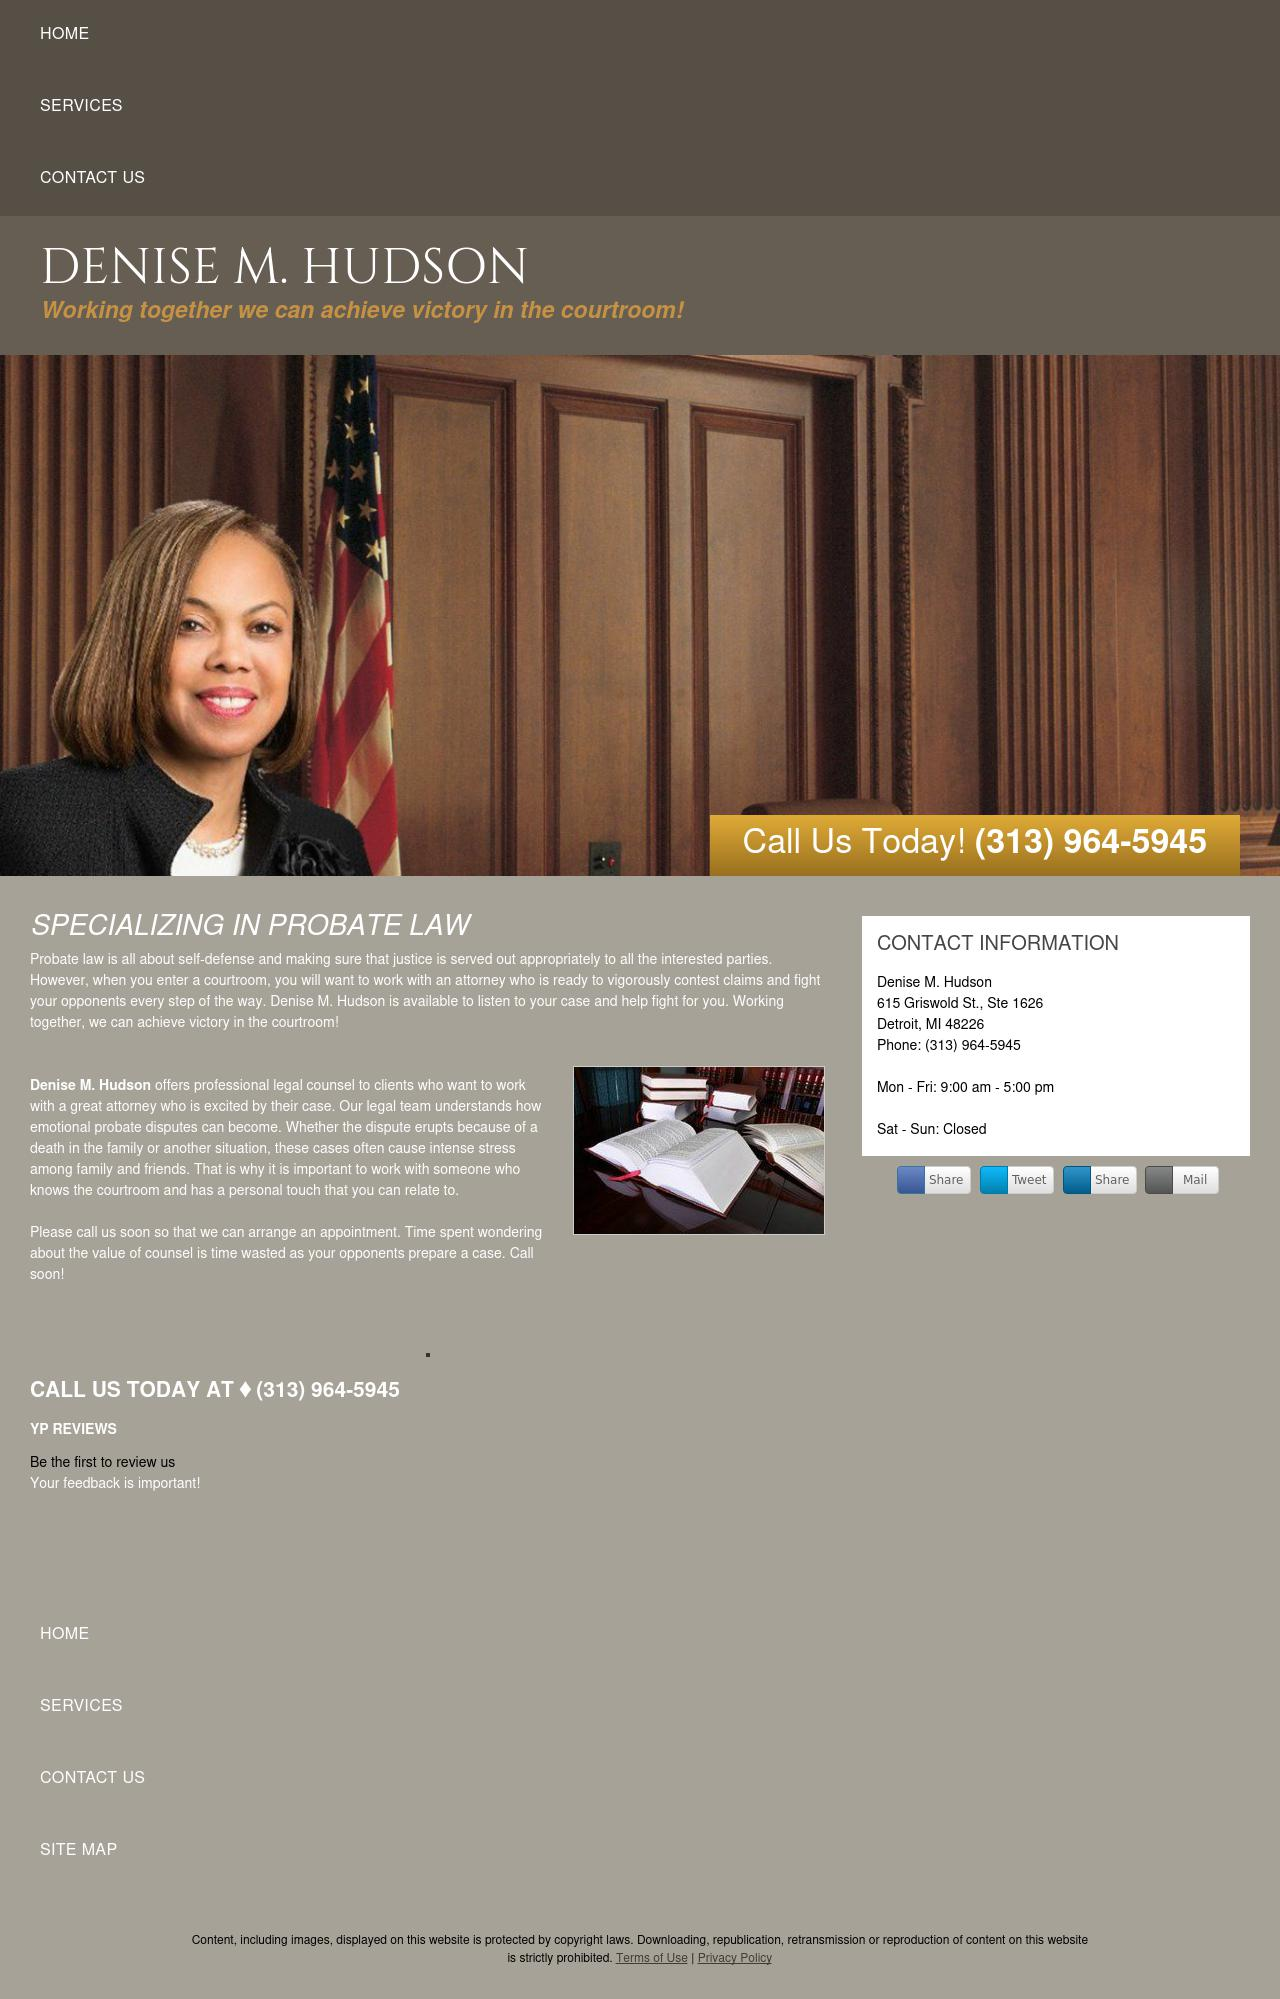 Denise M. Hudson - Detroit MI Lawyers